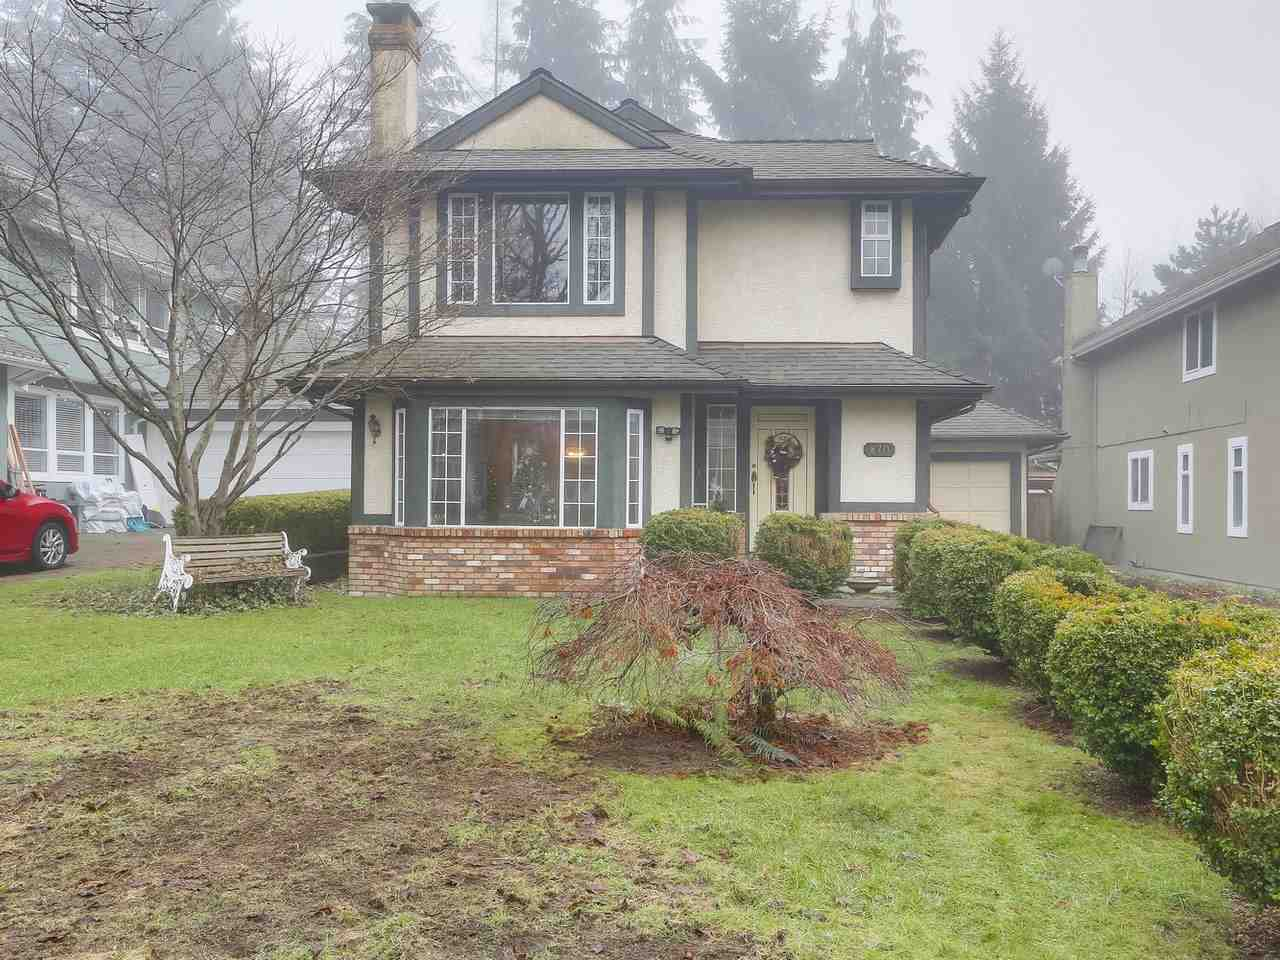 870 RUCKLE COURT, North Vancouver, BC, V7H 2P6 Photo 1